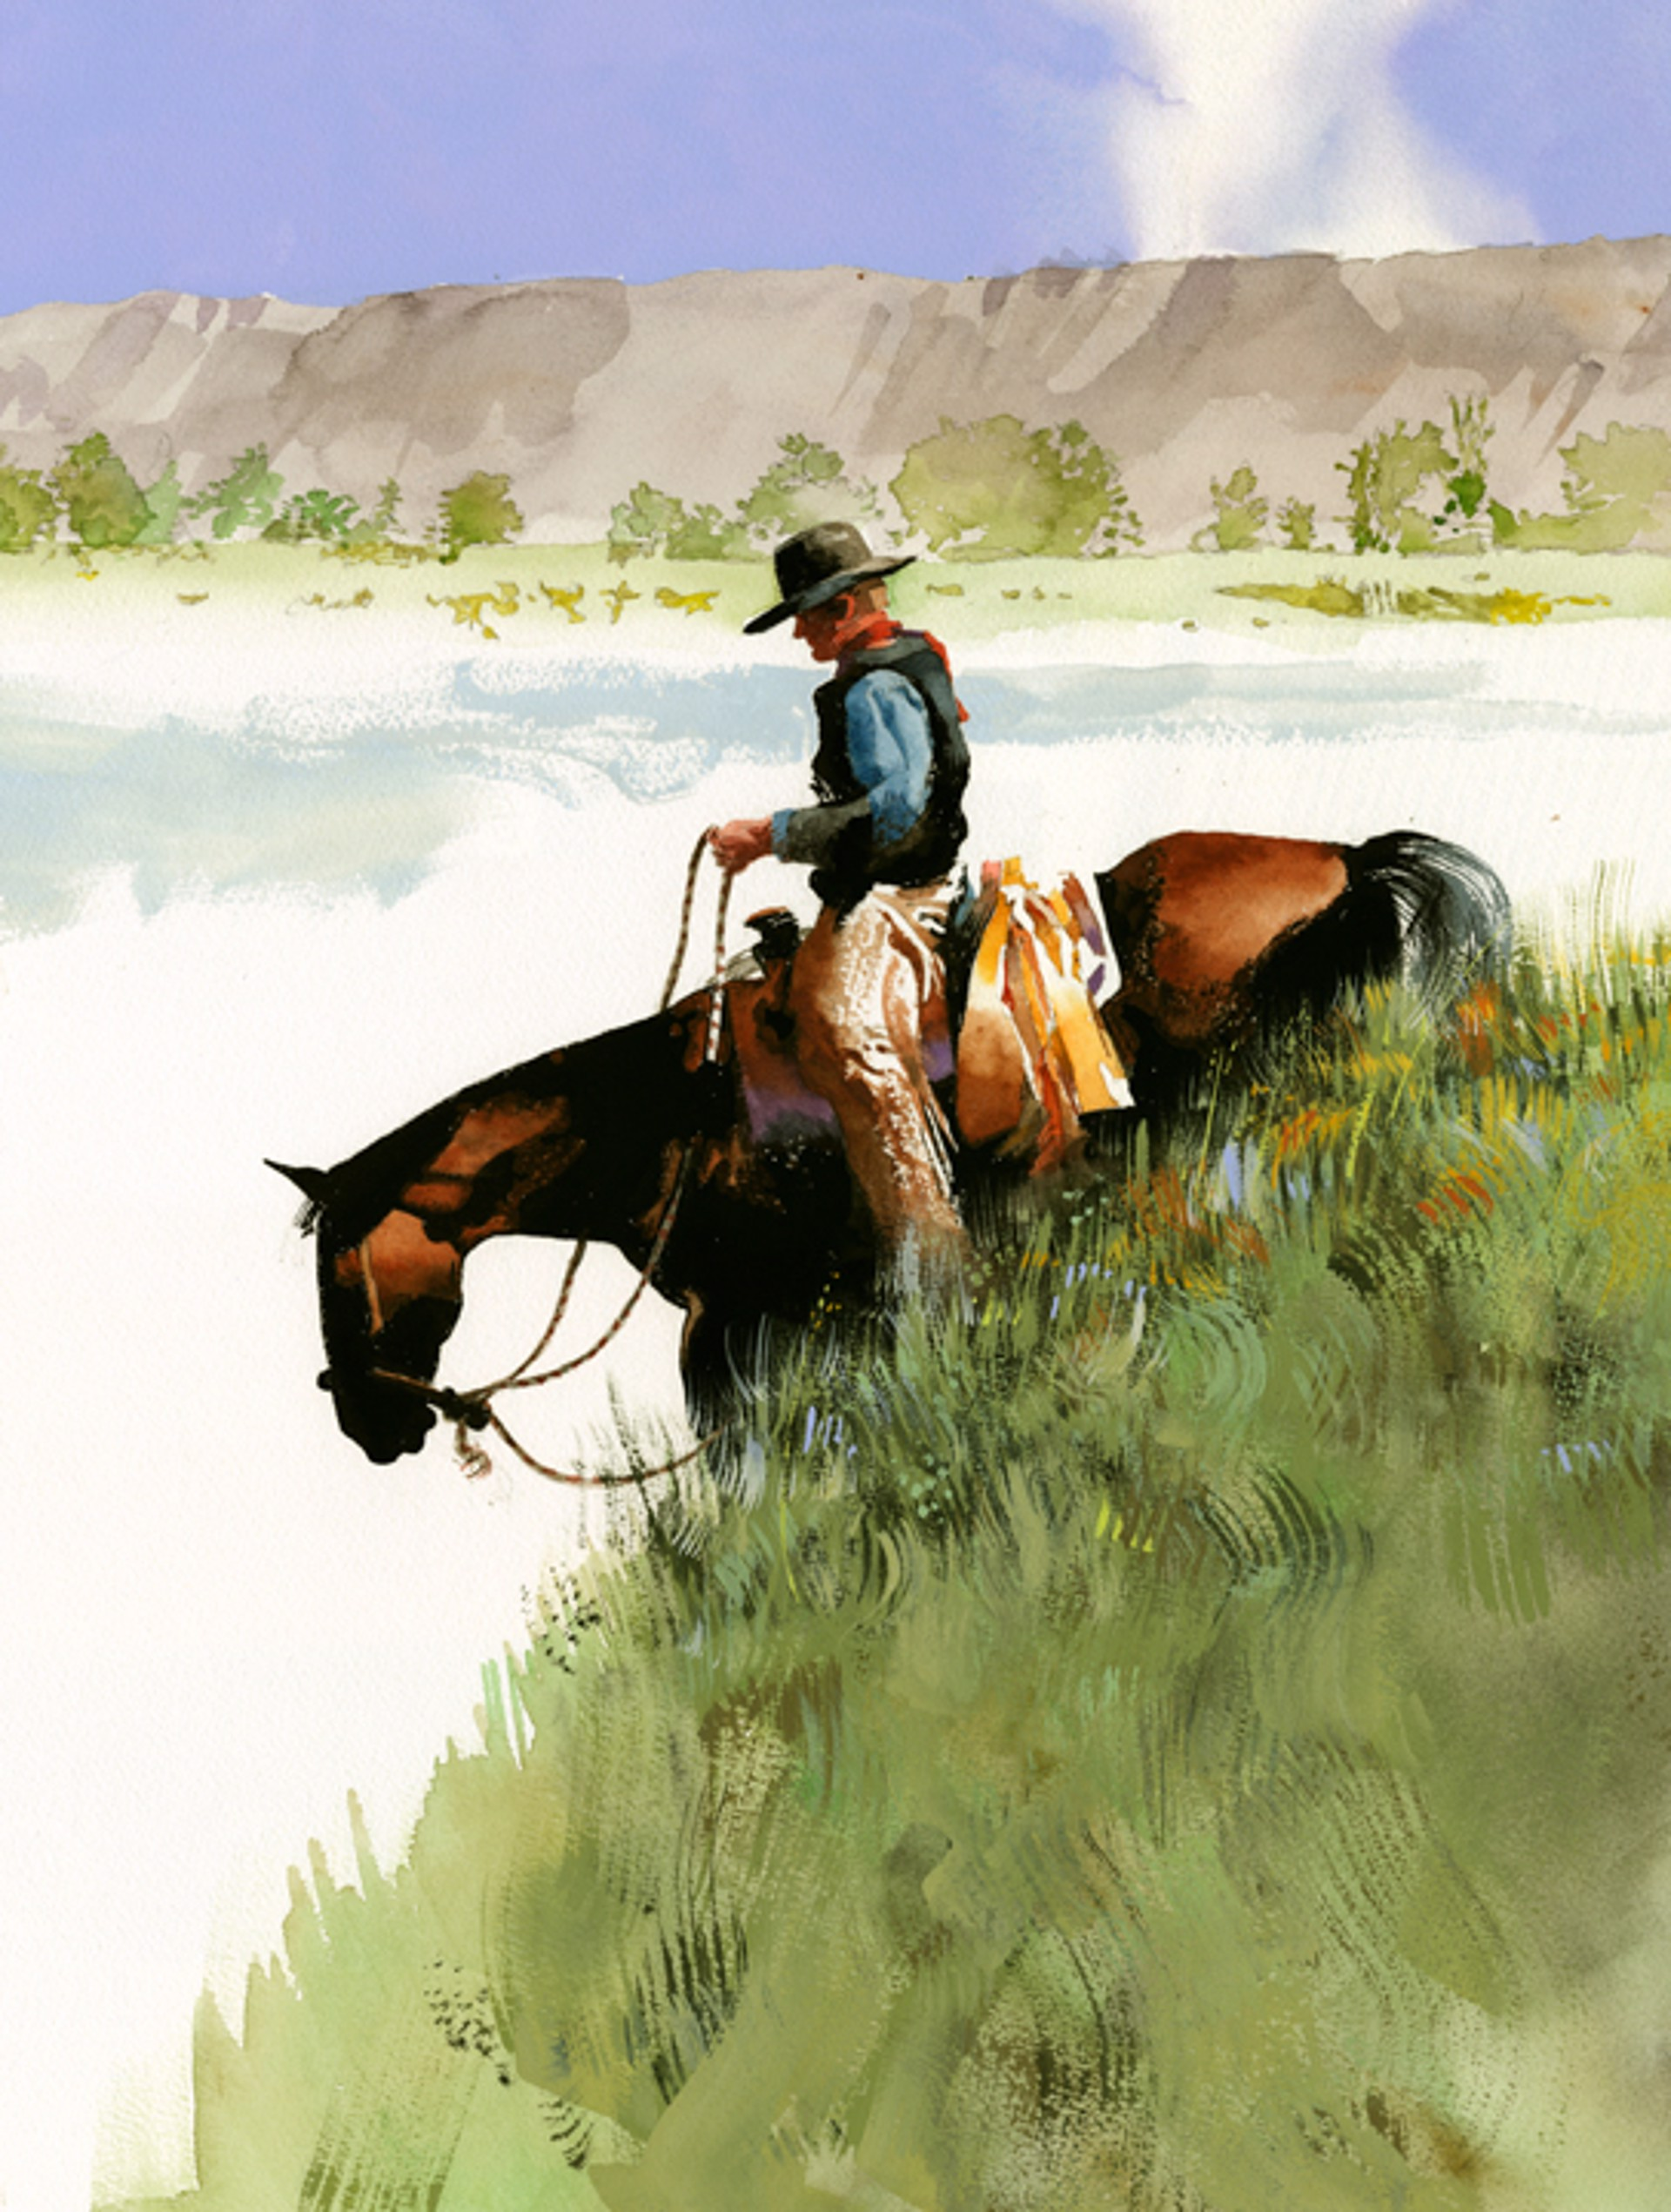 Grassy Slope (Rider on a steep hill) by Don Weller